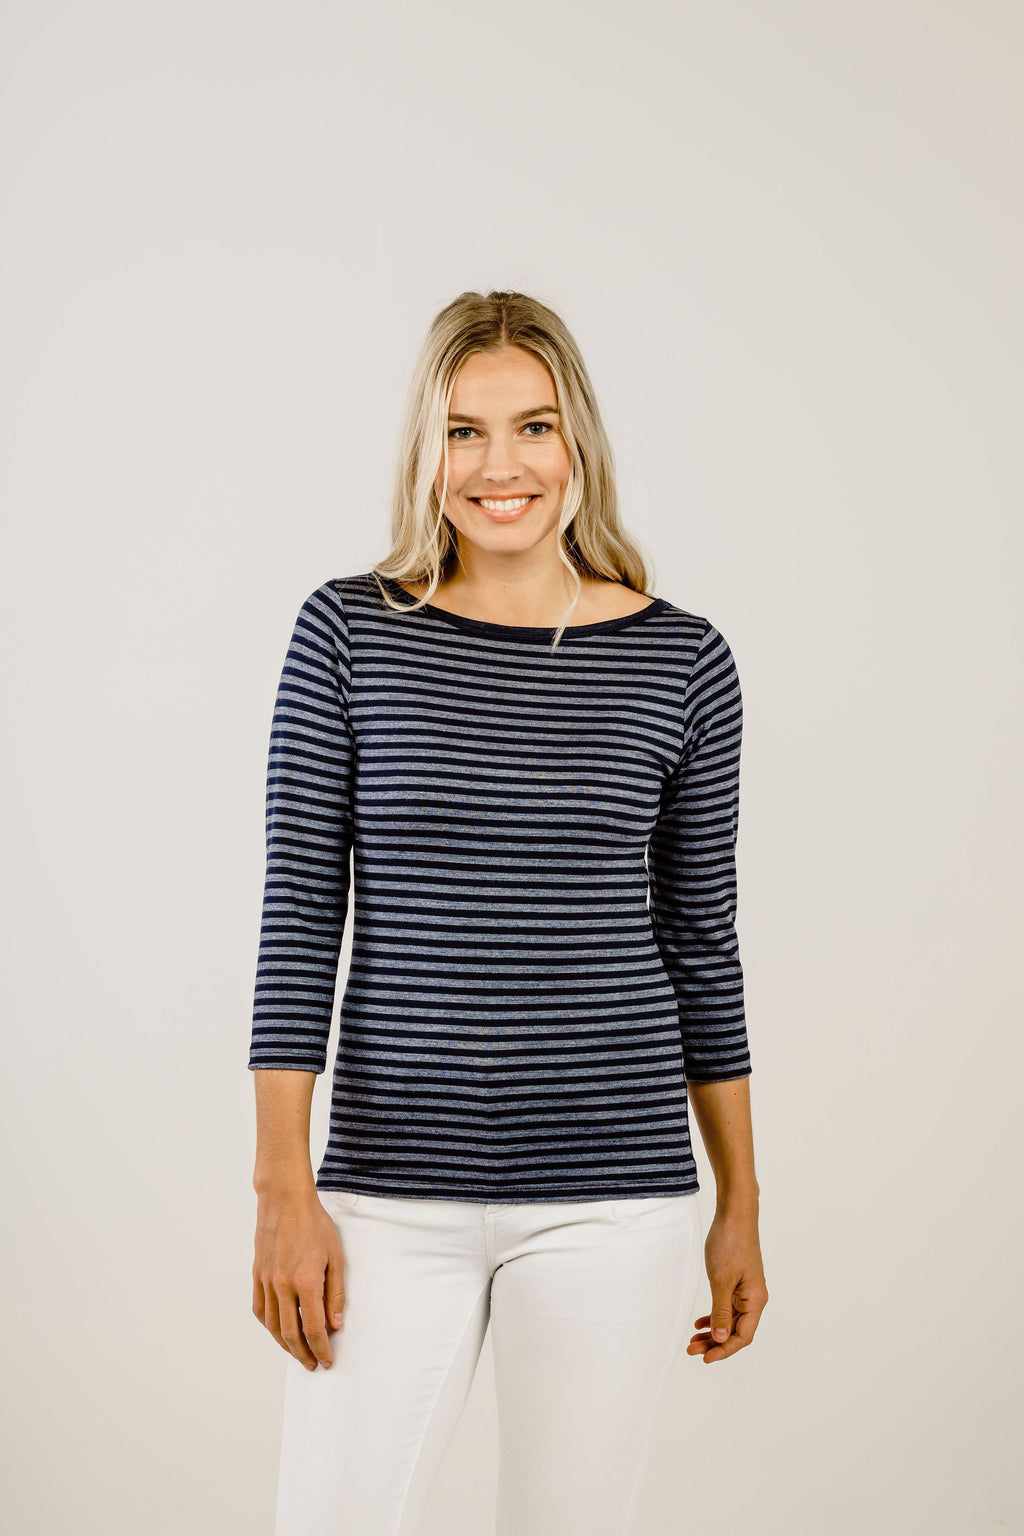 Striped Merino Boat Neck Shirt - Kapeka NZ